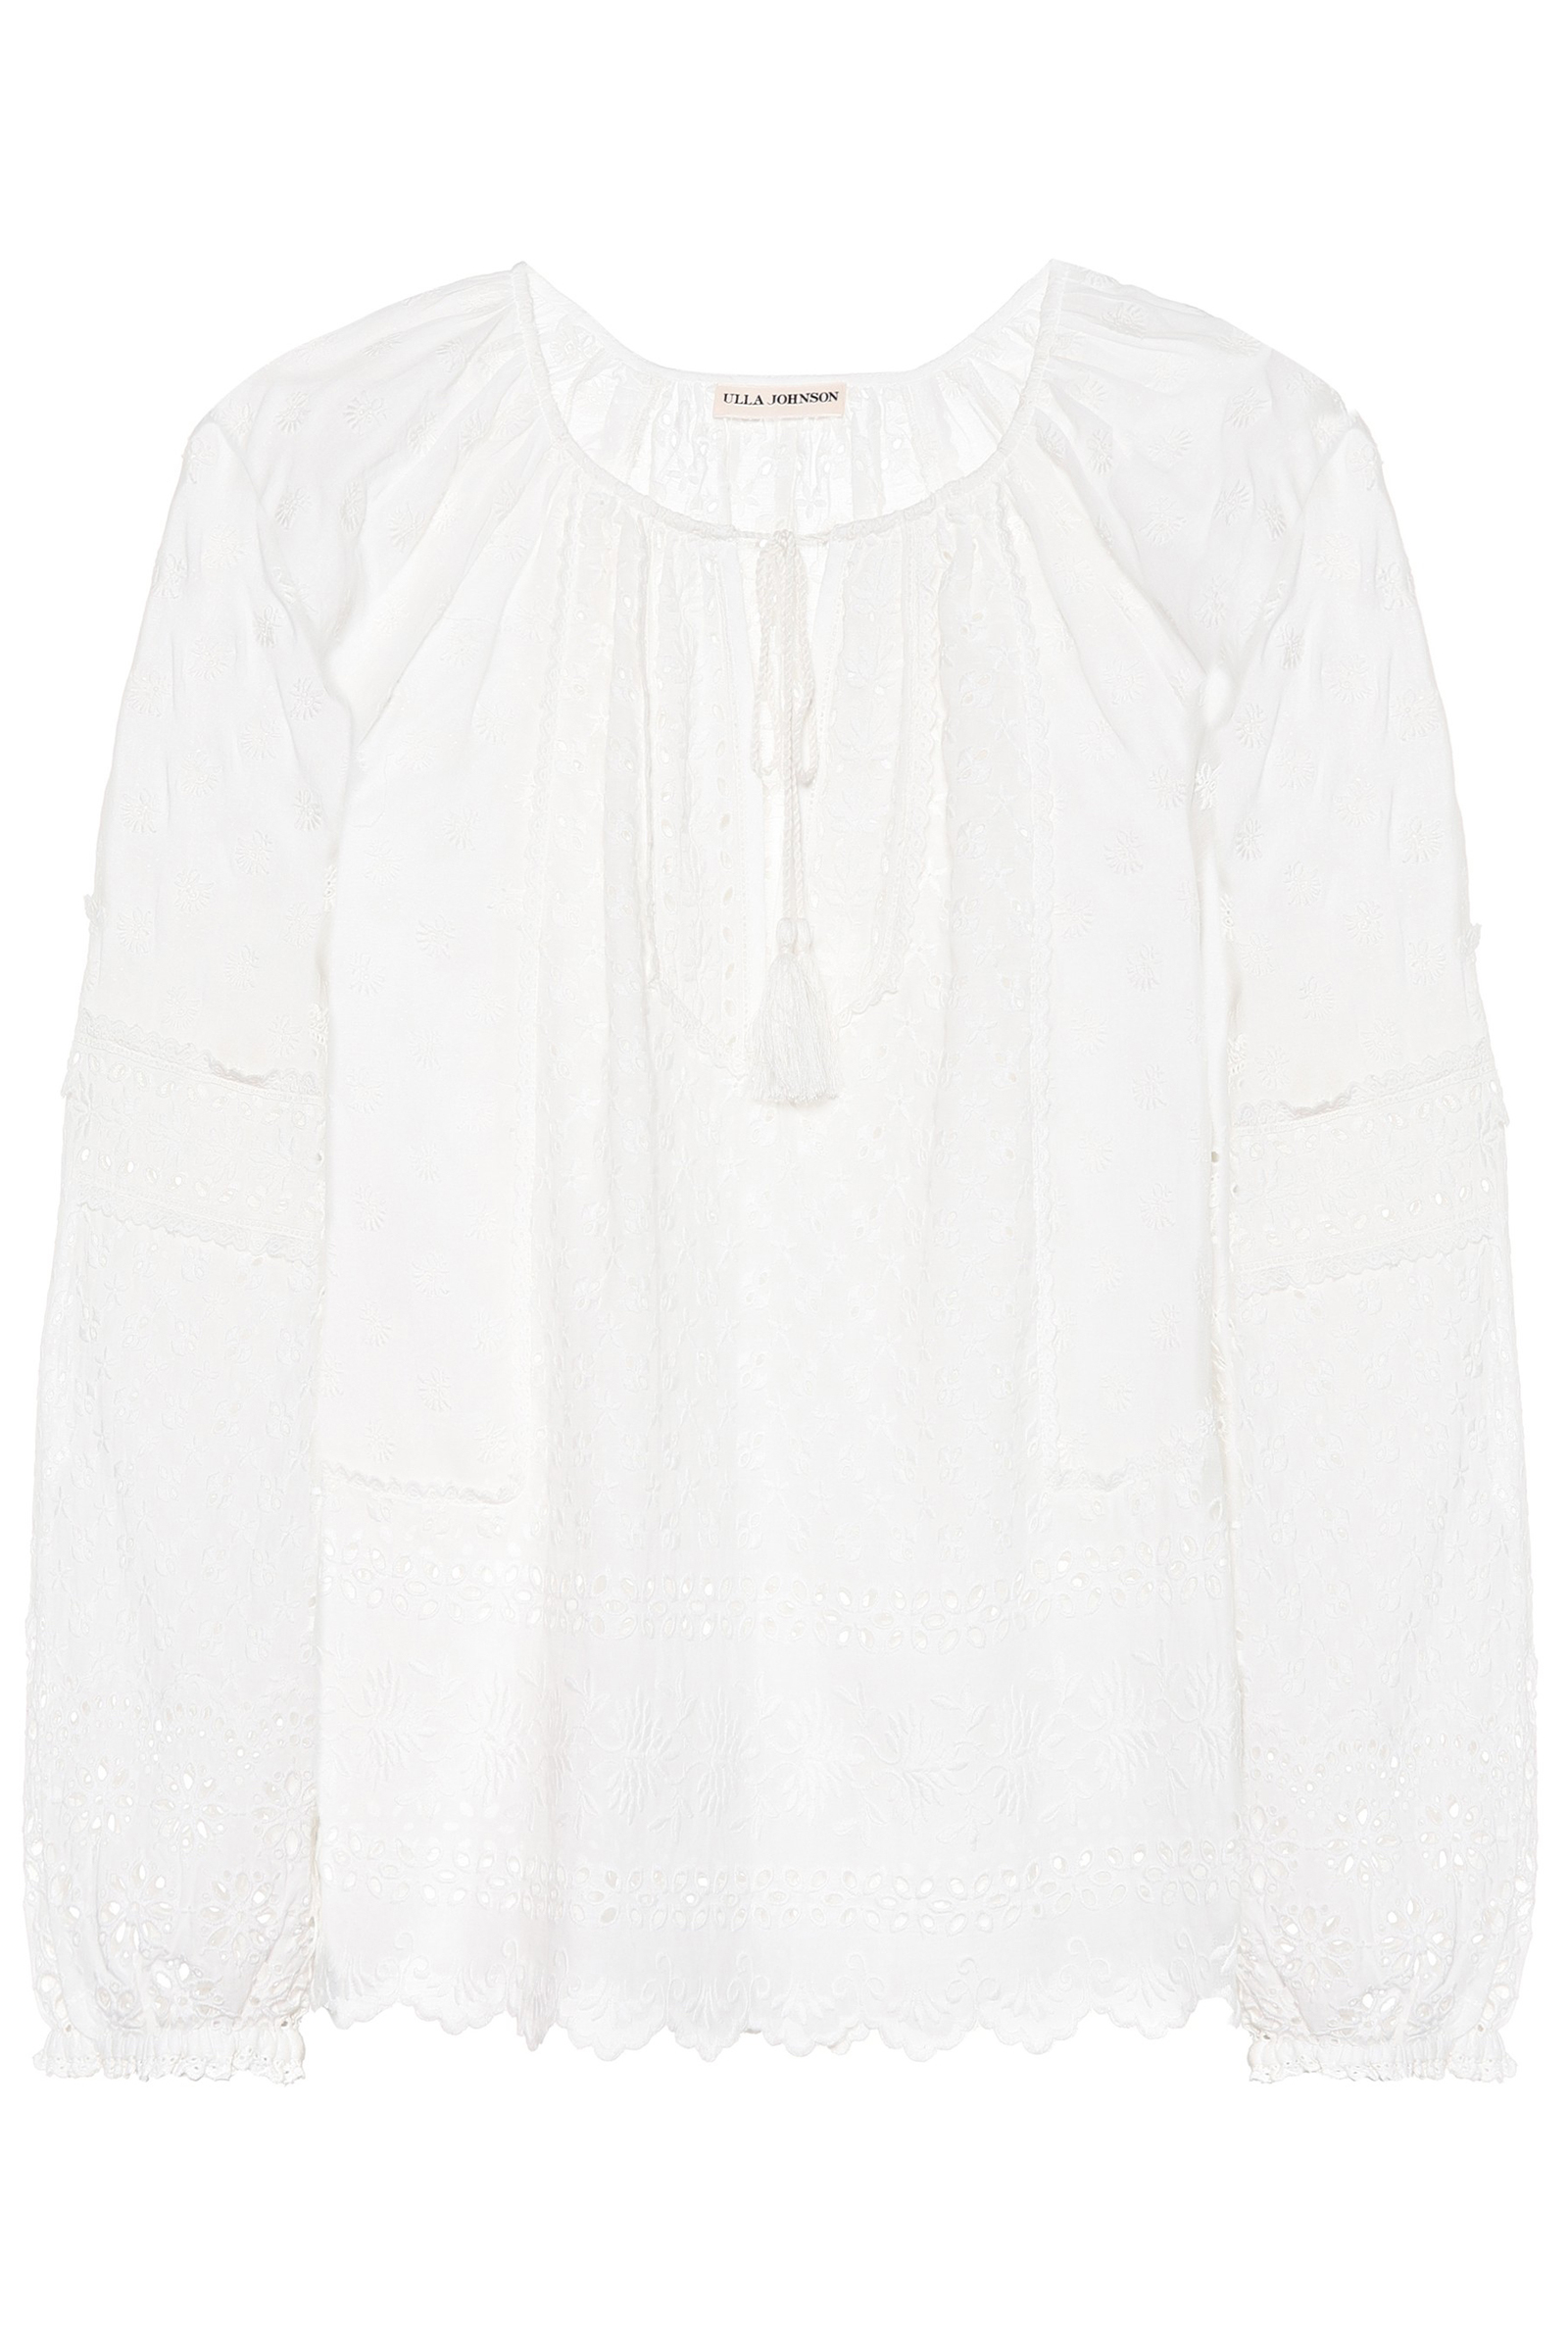 26c77b9a79ea3d Buy Ulla Johnson Cara Cotton Broderie Anglaise Blouse Online